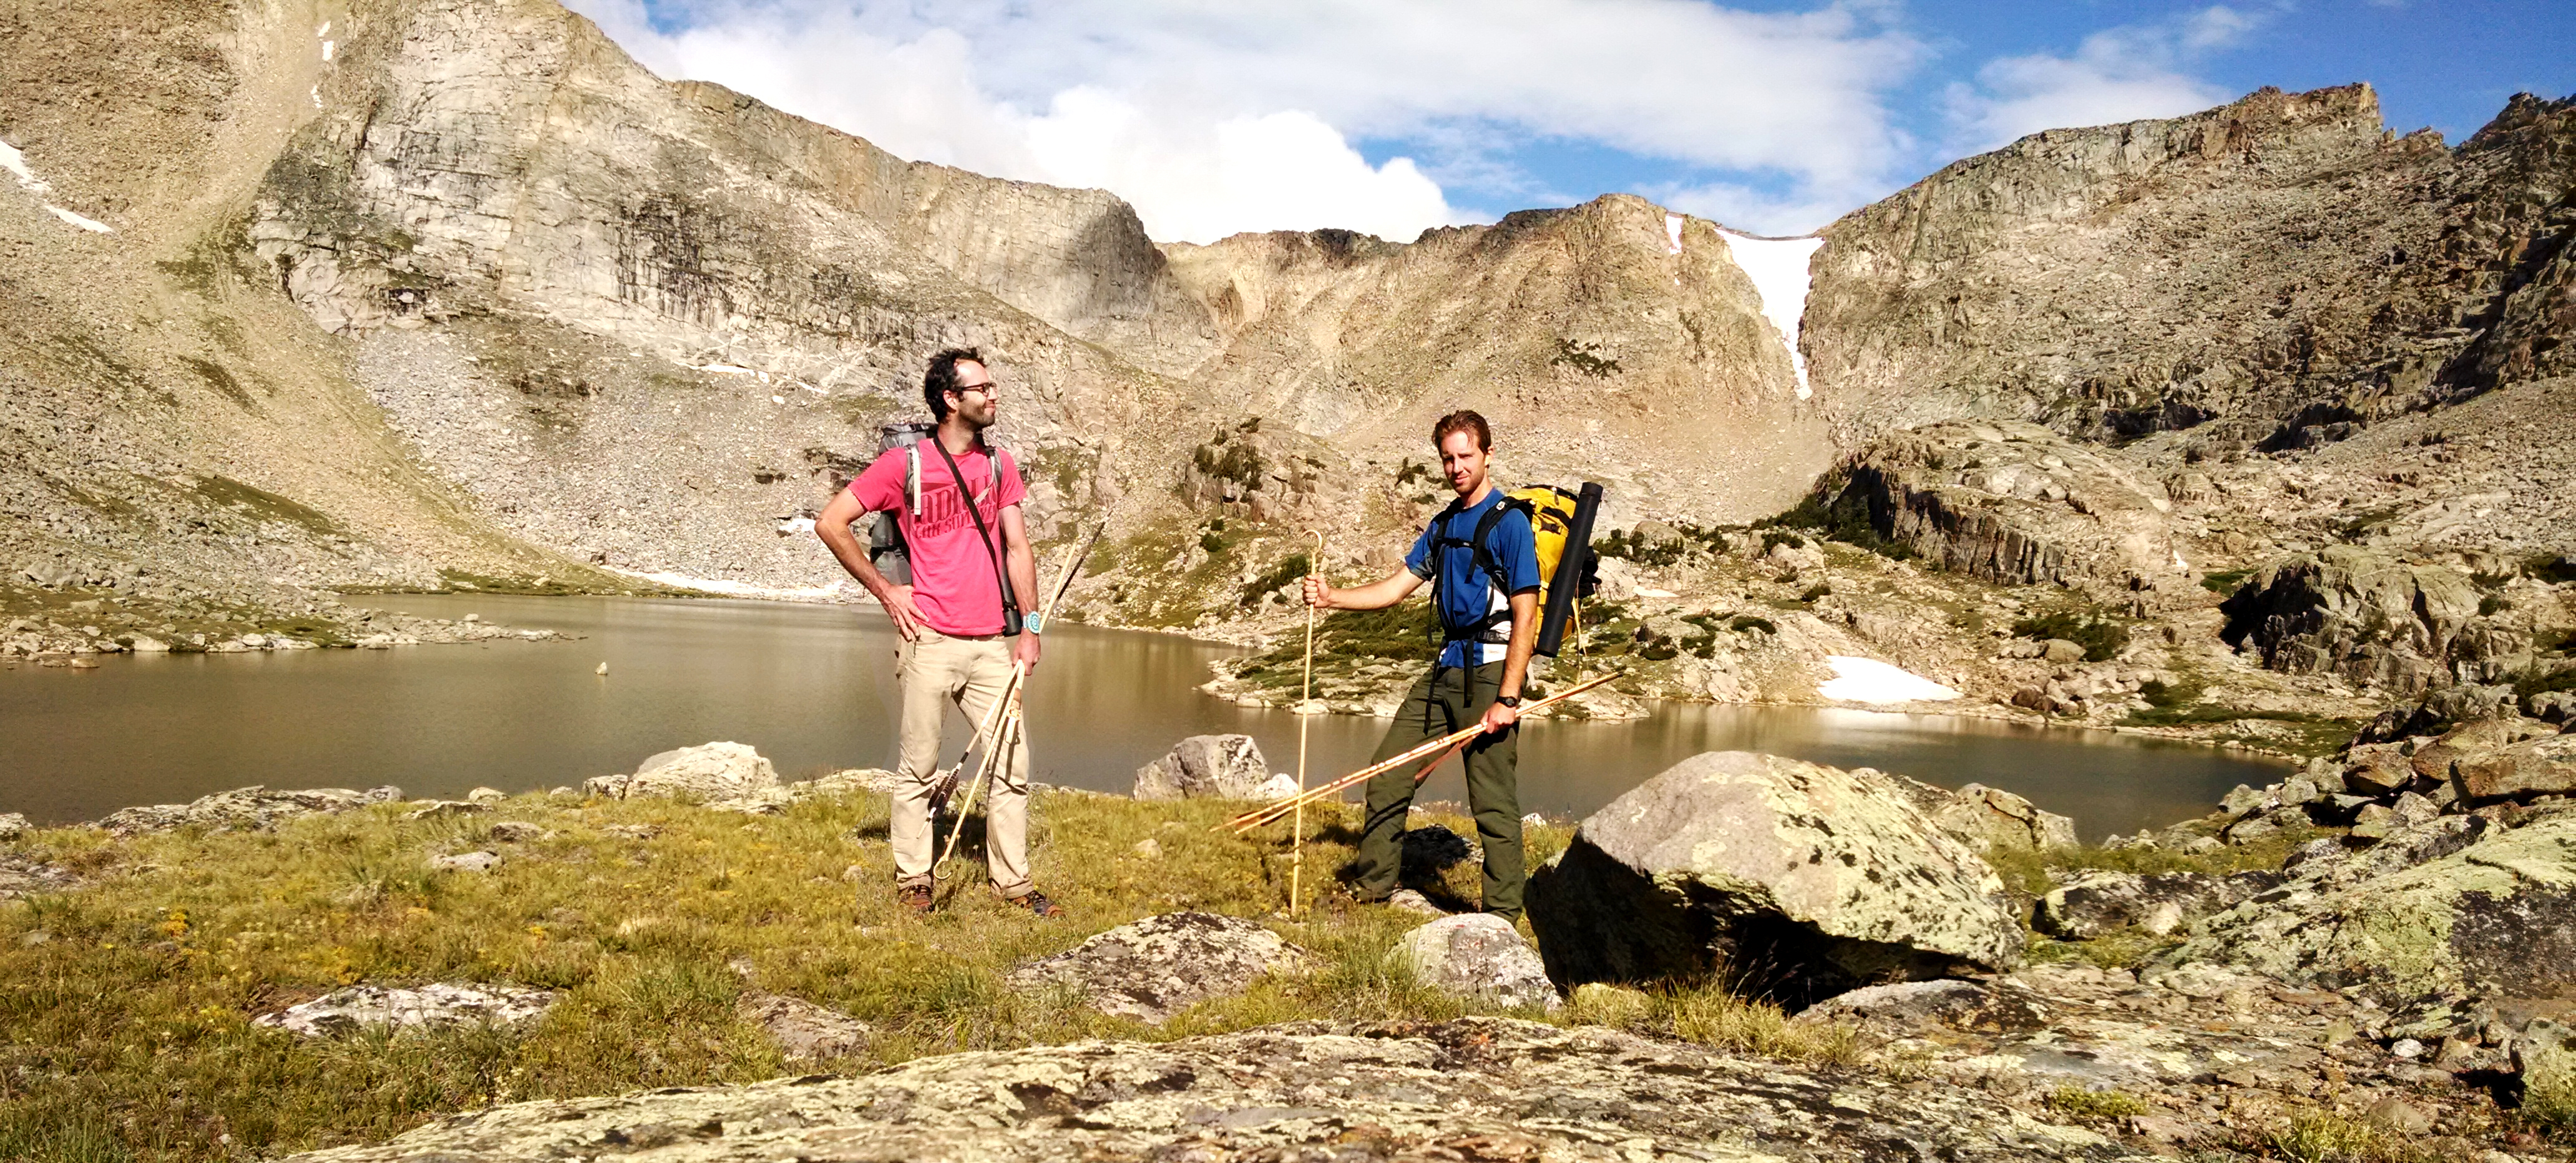 Garnett and Pettigrew backpacking with takedown darts in Wyoming